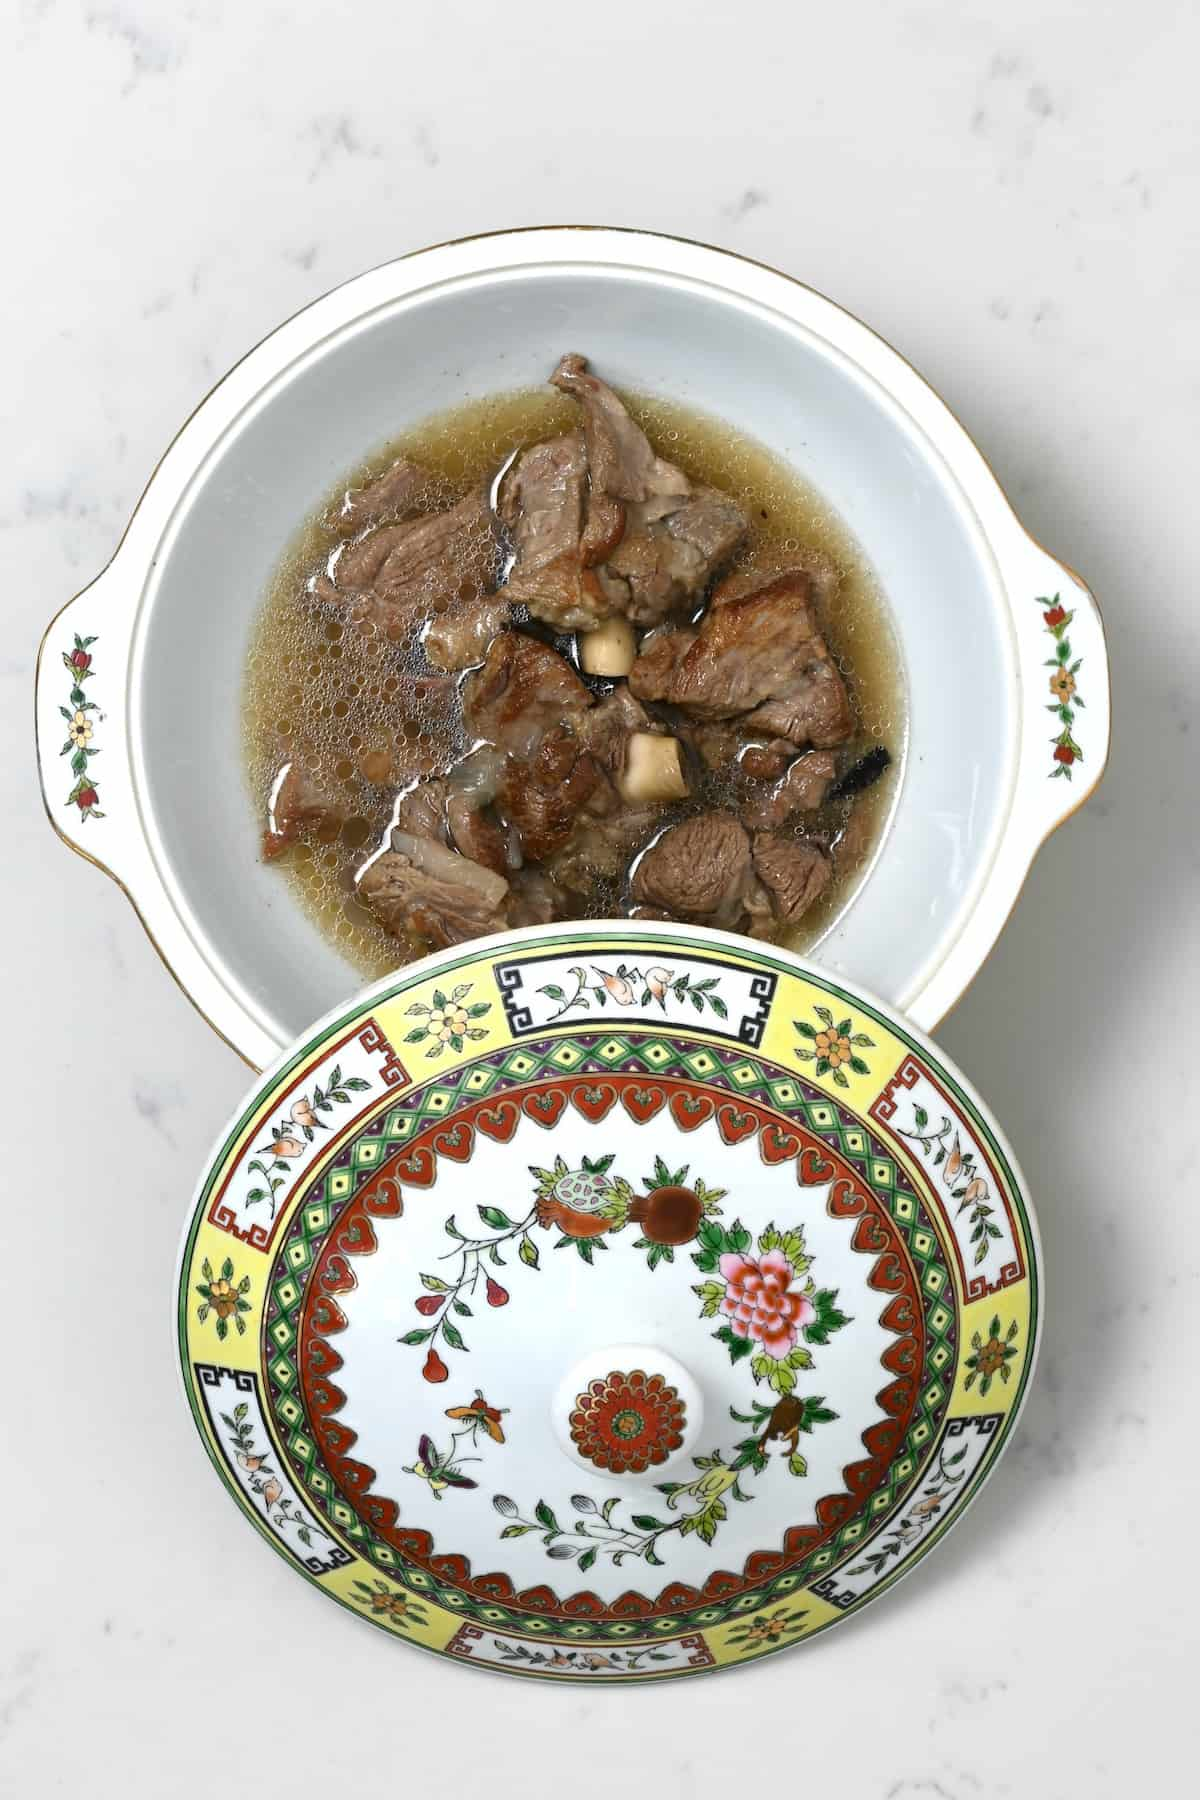 Cooked beed in broth in a bowl